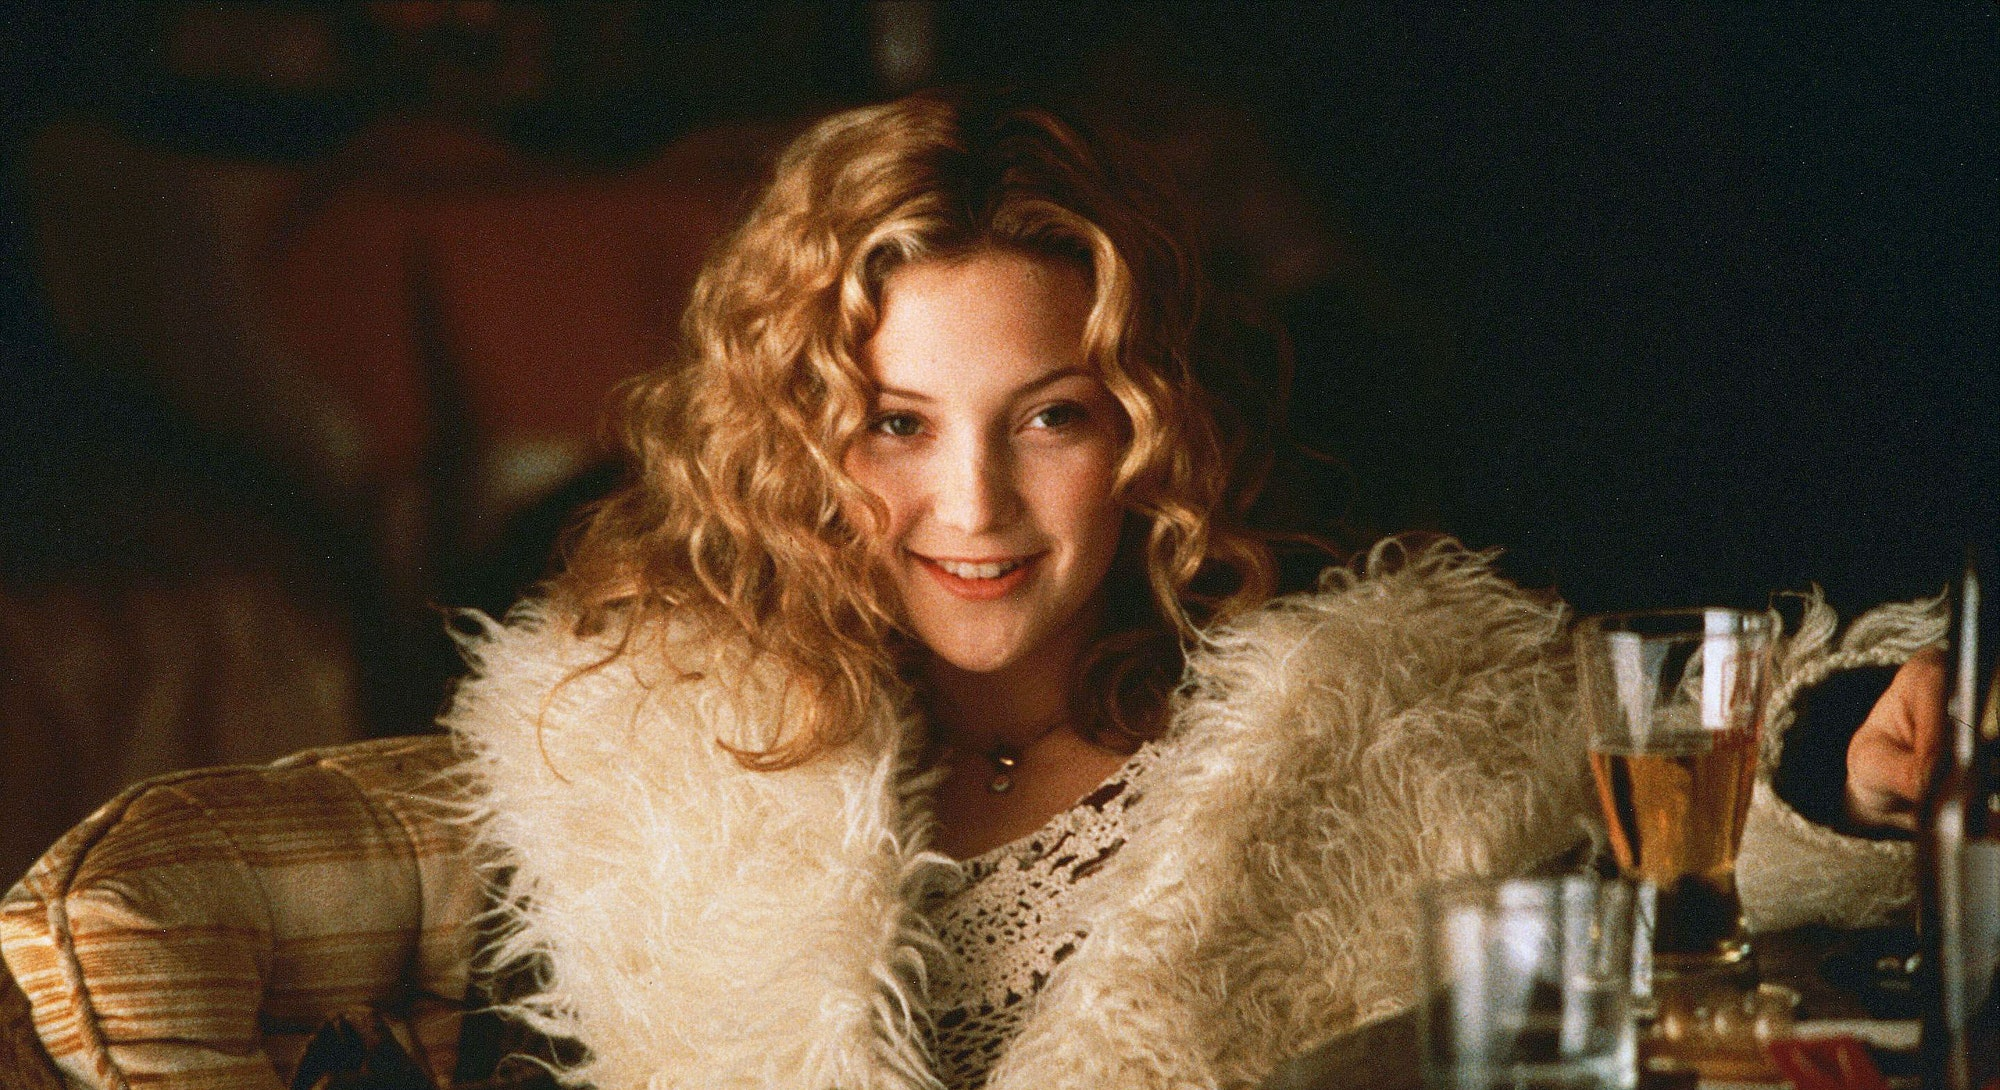 Kate Hudson in 2000's Almost Famous.